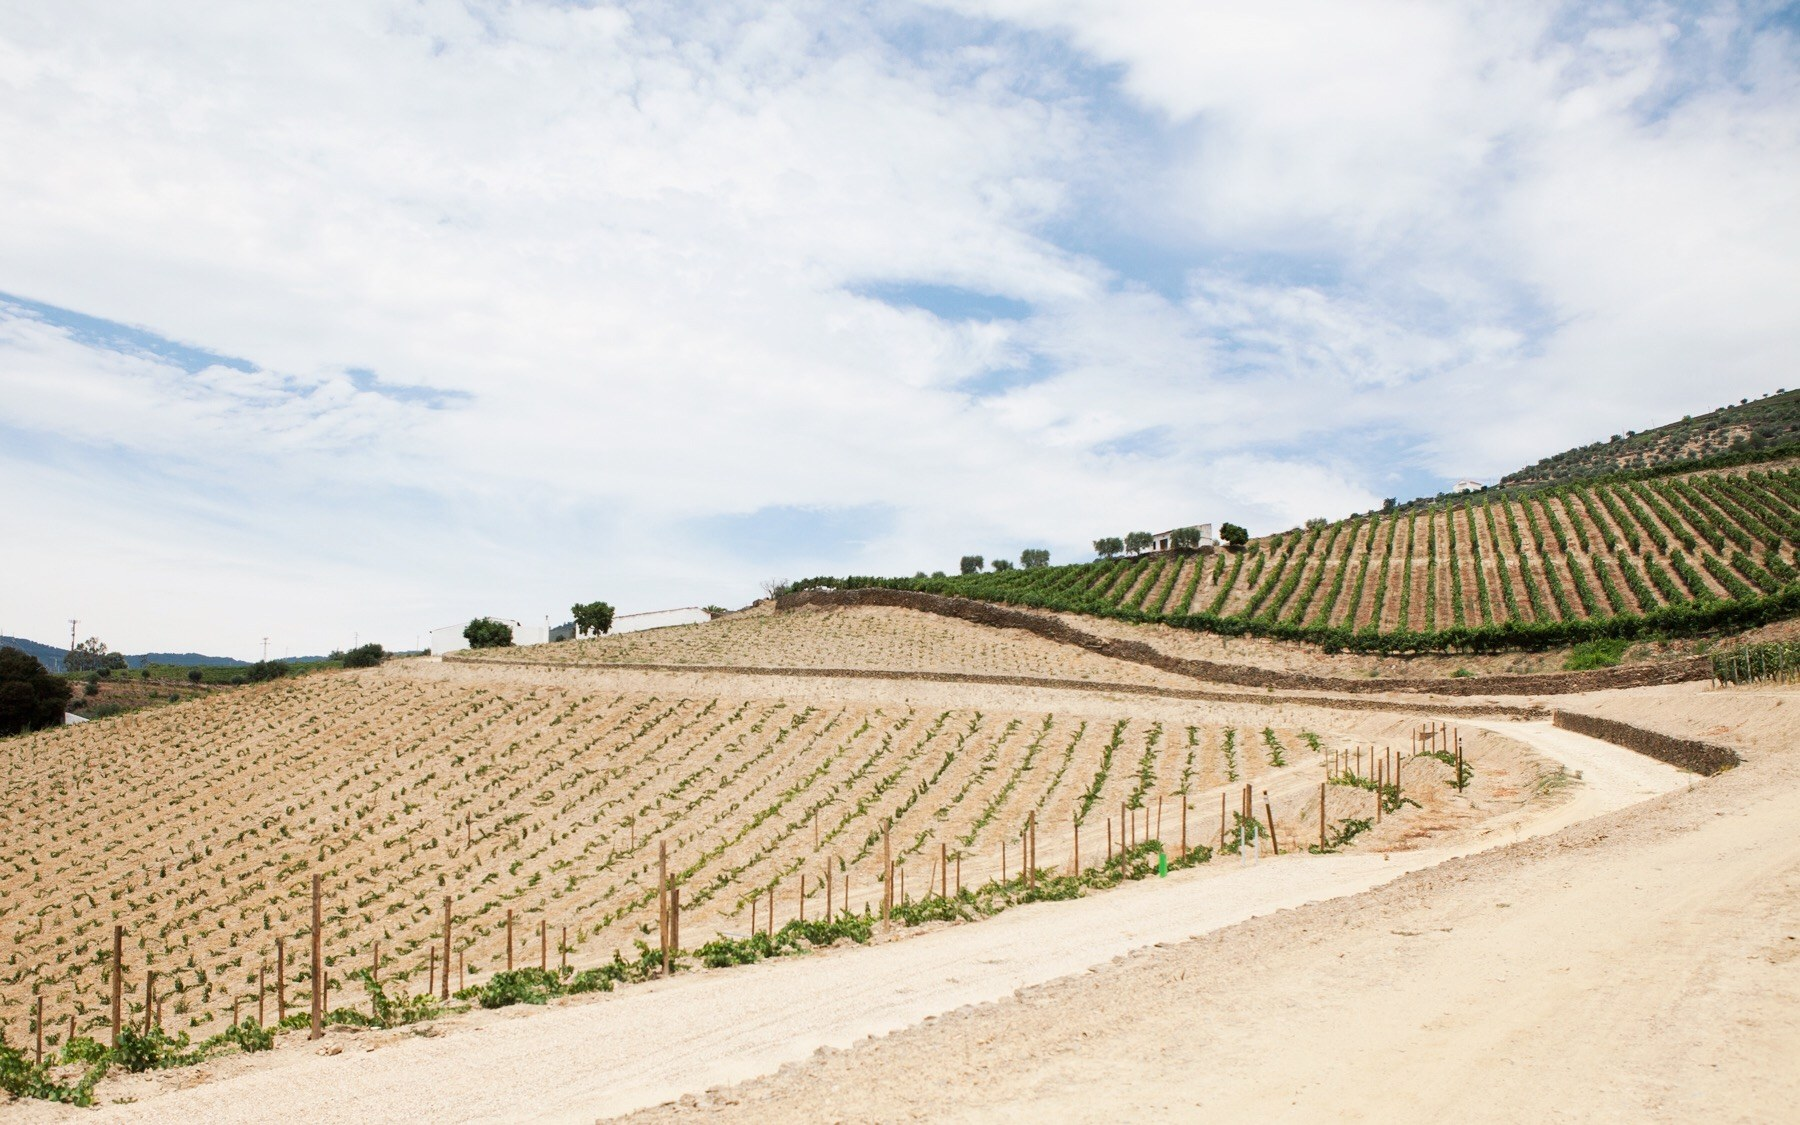 road-trip-abroad-vineyards-larkin-clark